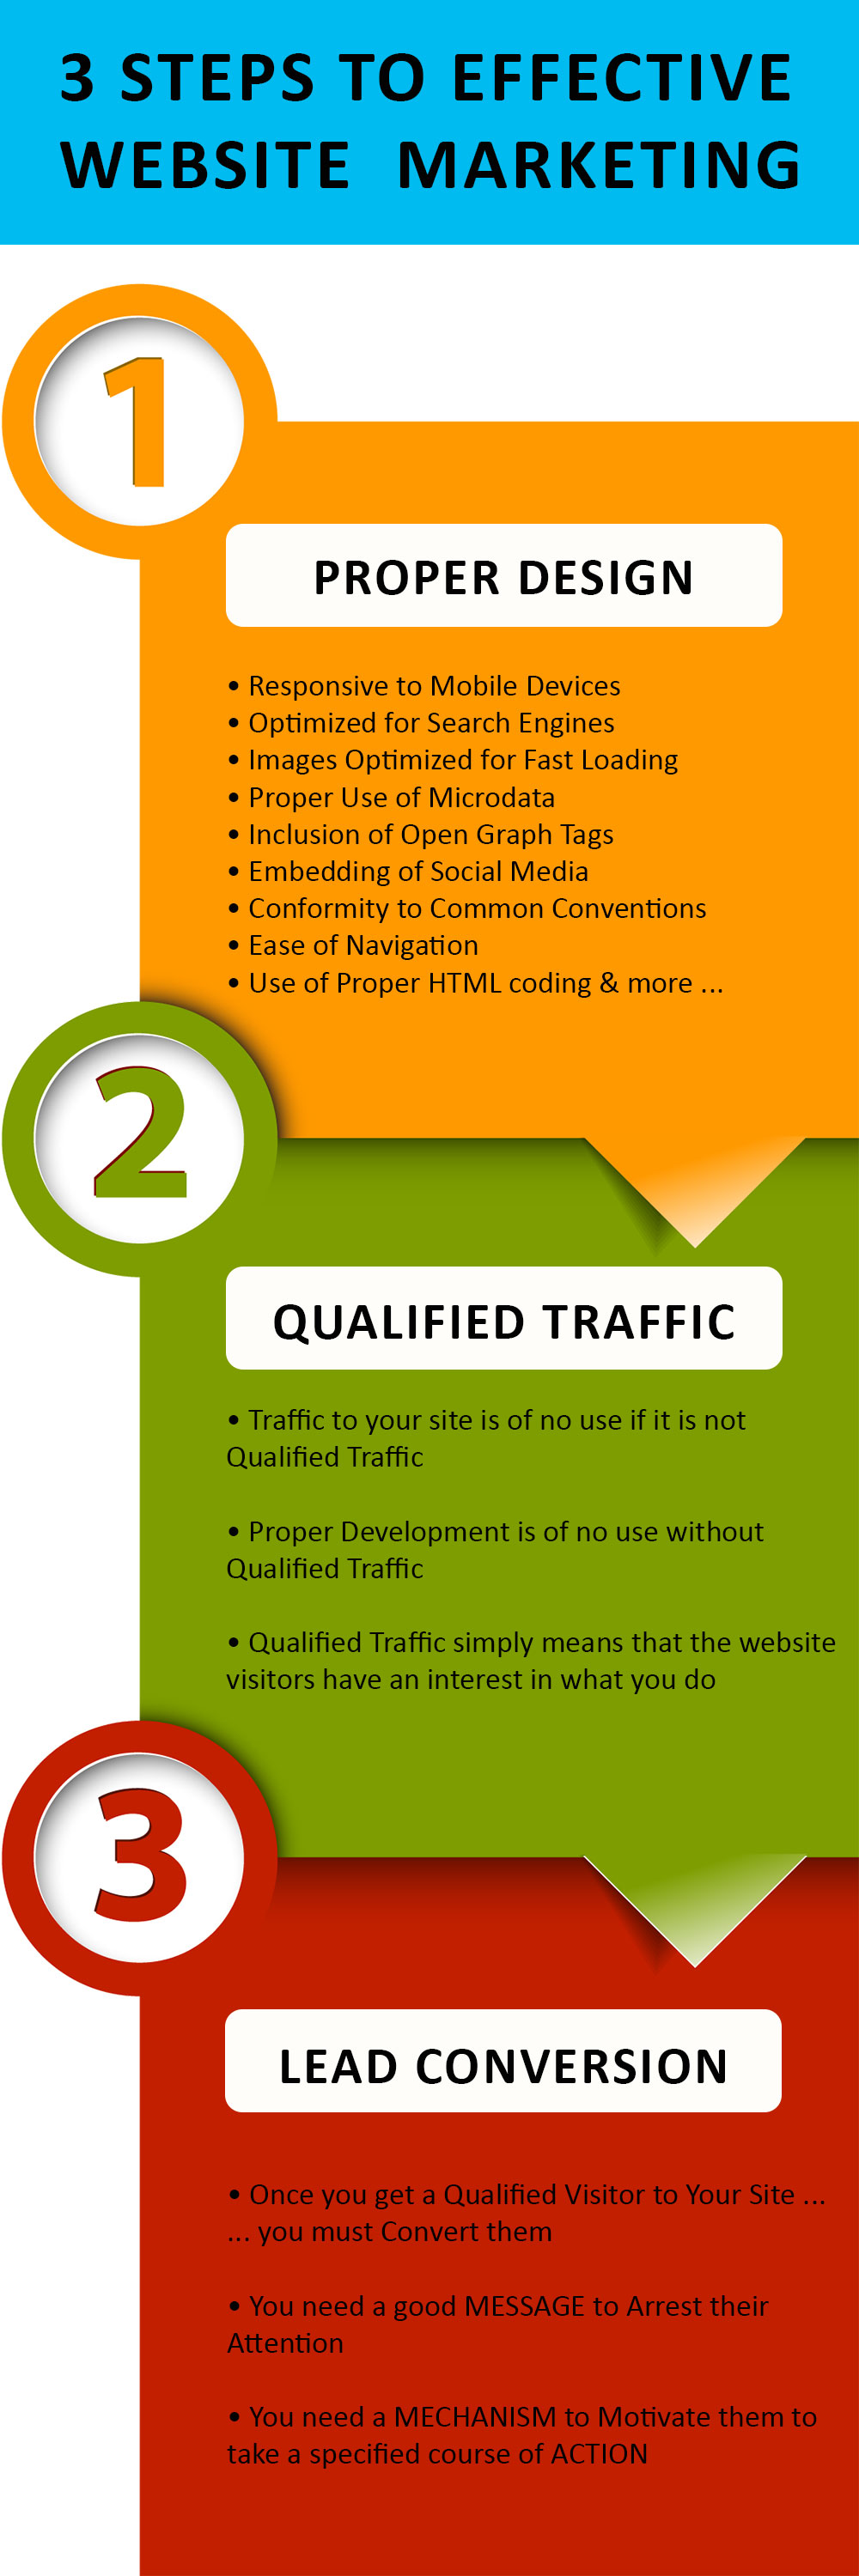 Results Based Website Marketing and Development